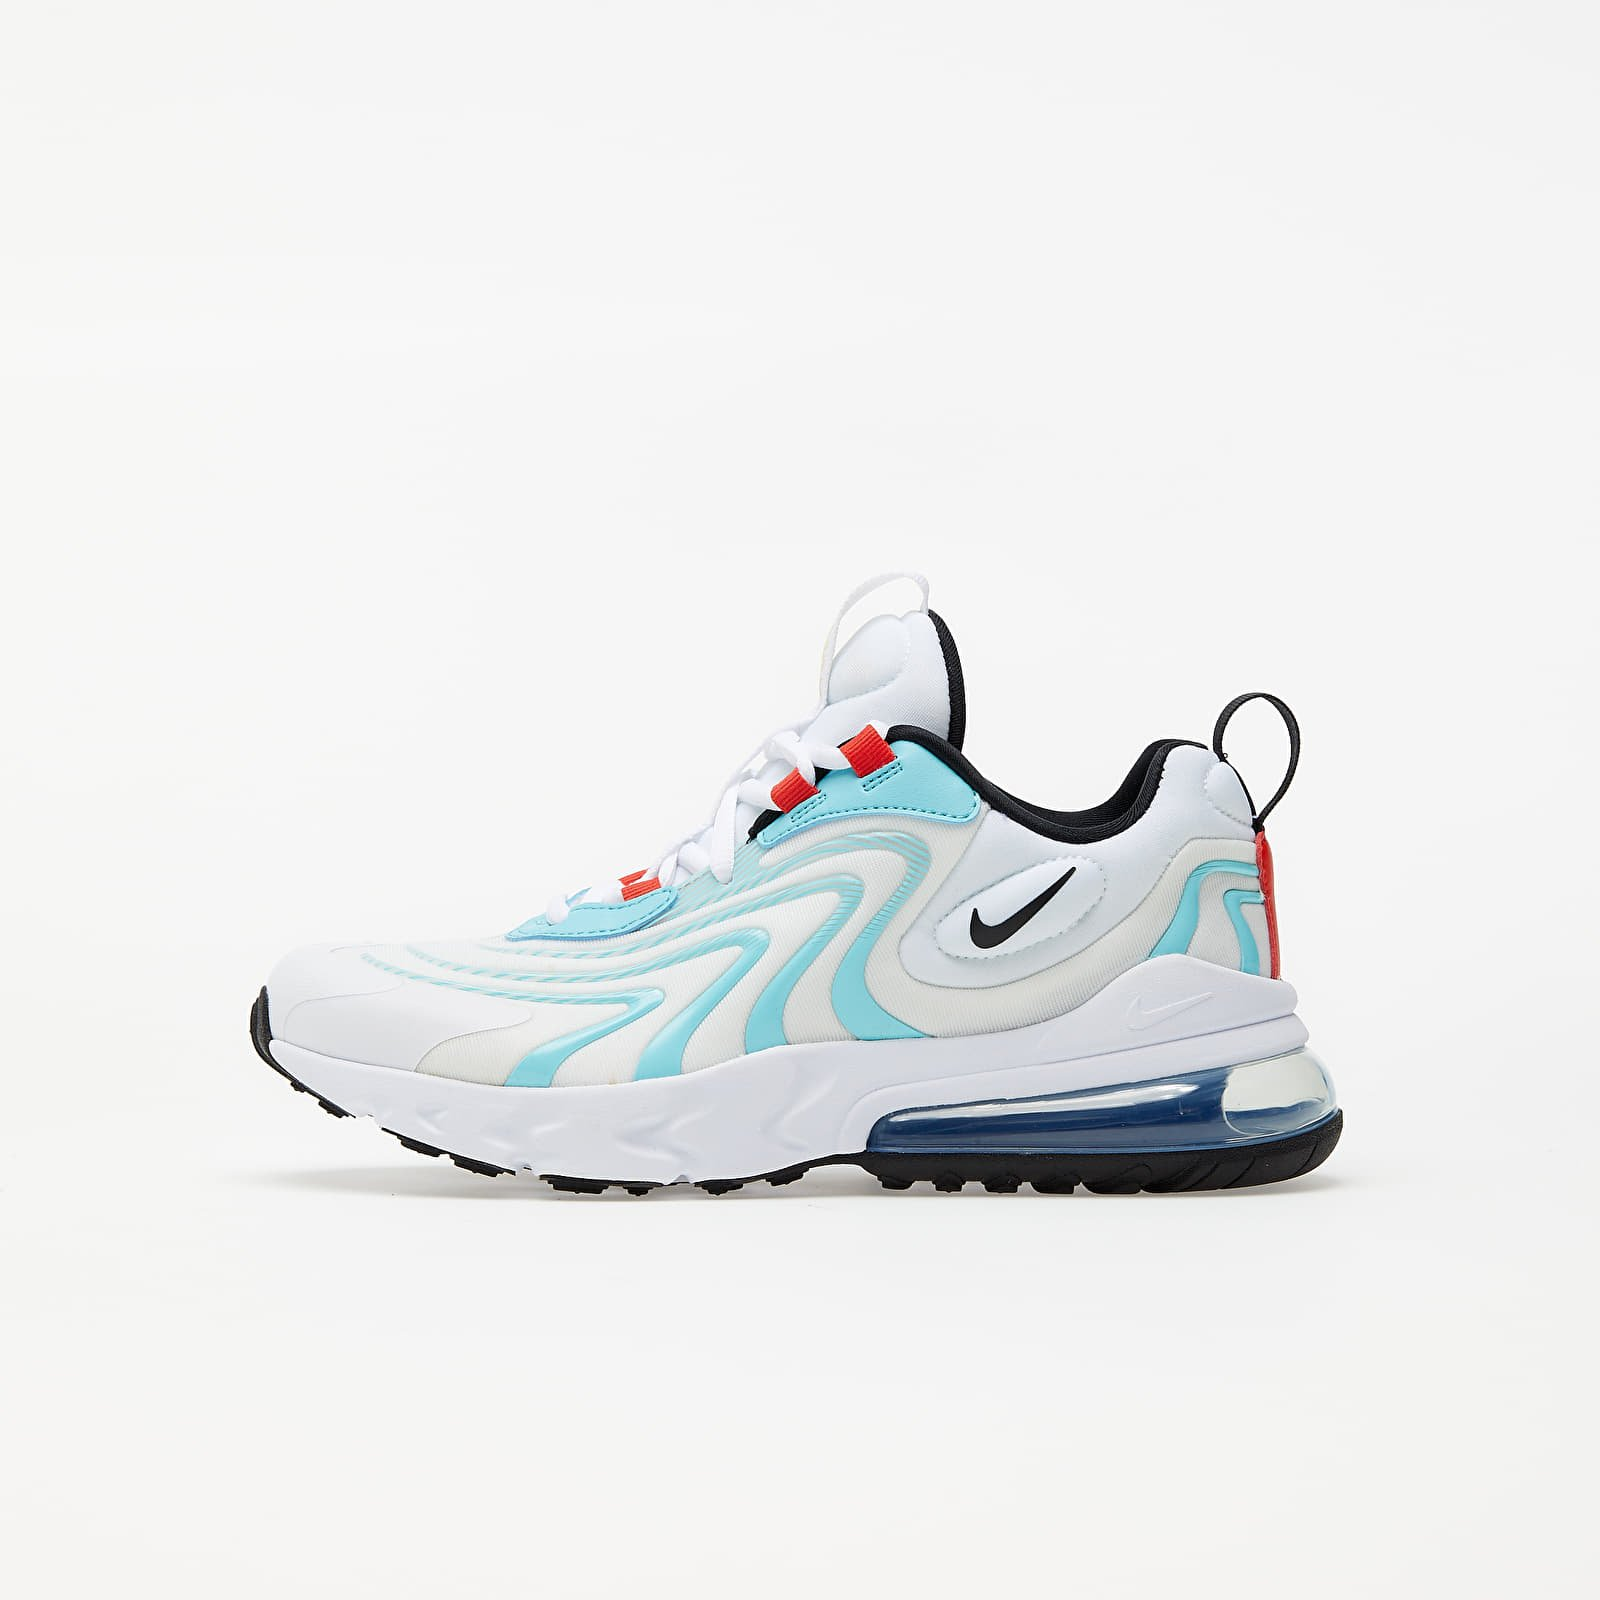 Nike Air Max 270 React Eng (GS) White/ Black-Bleached Aqua-Chile Red EUR 37.5